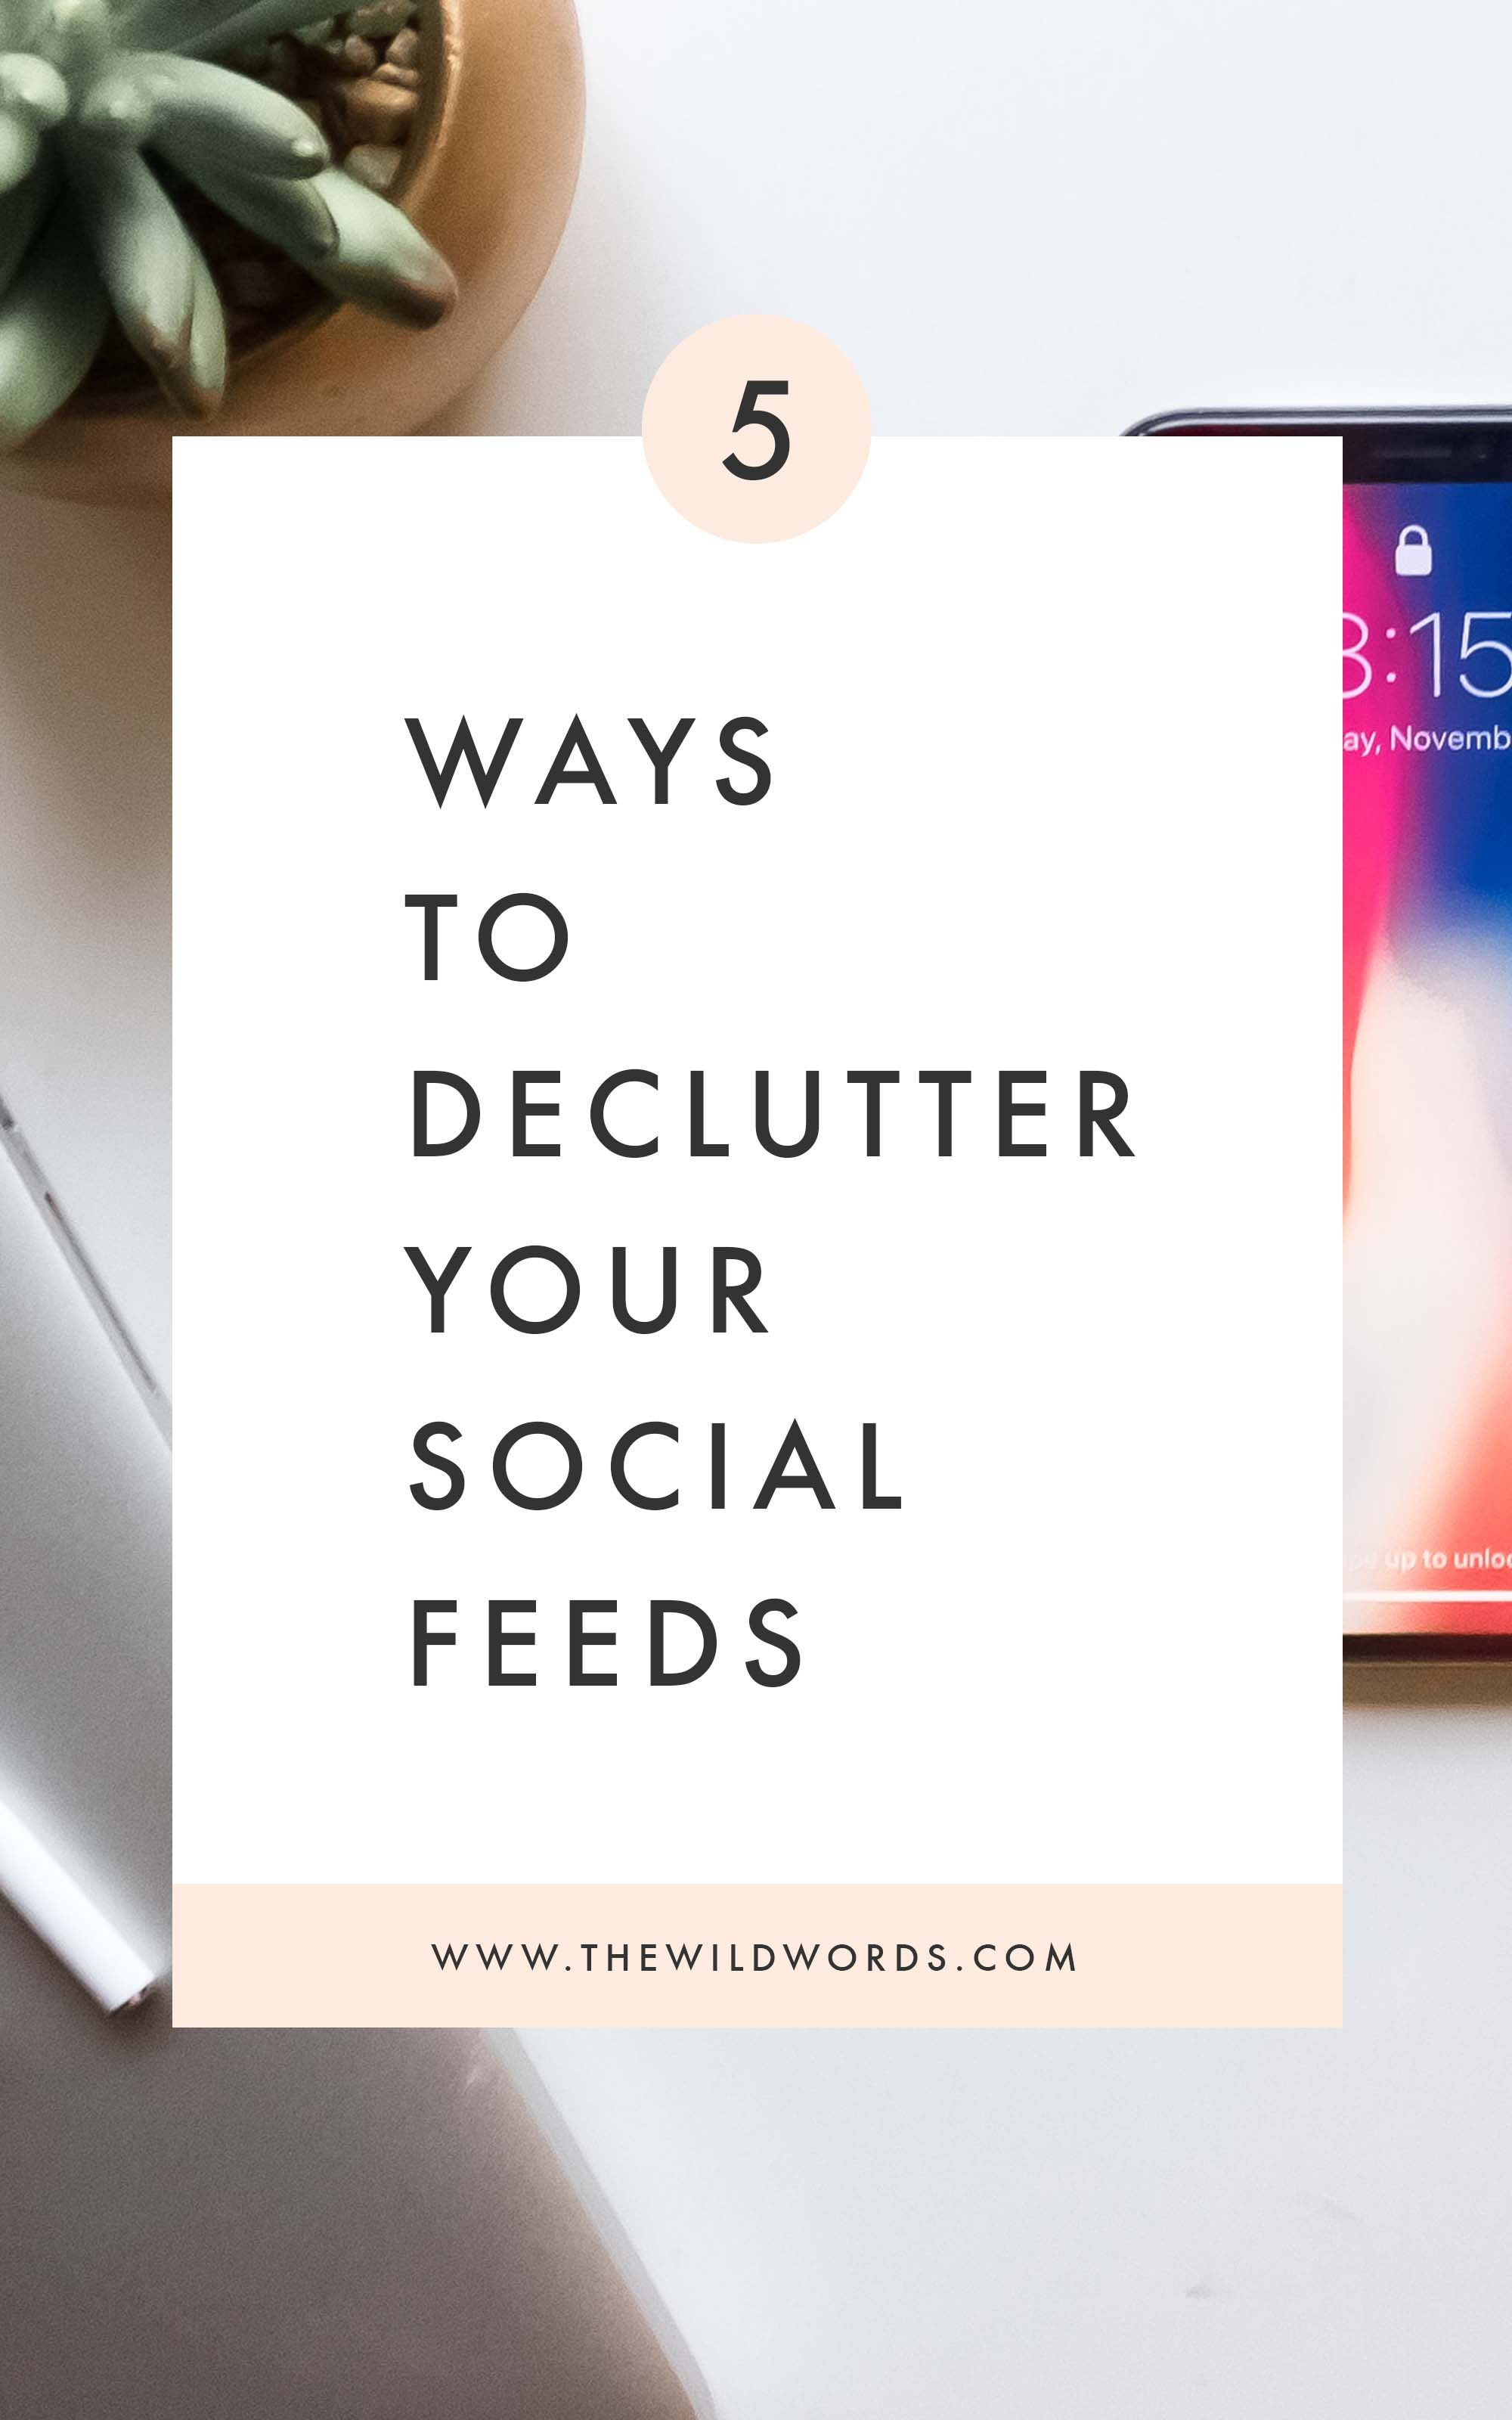 5 Ways to Declutter Your Social Media Feeds